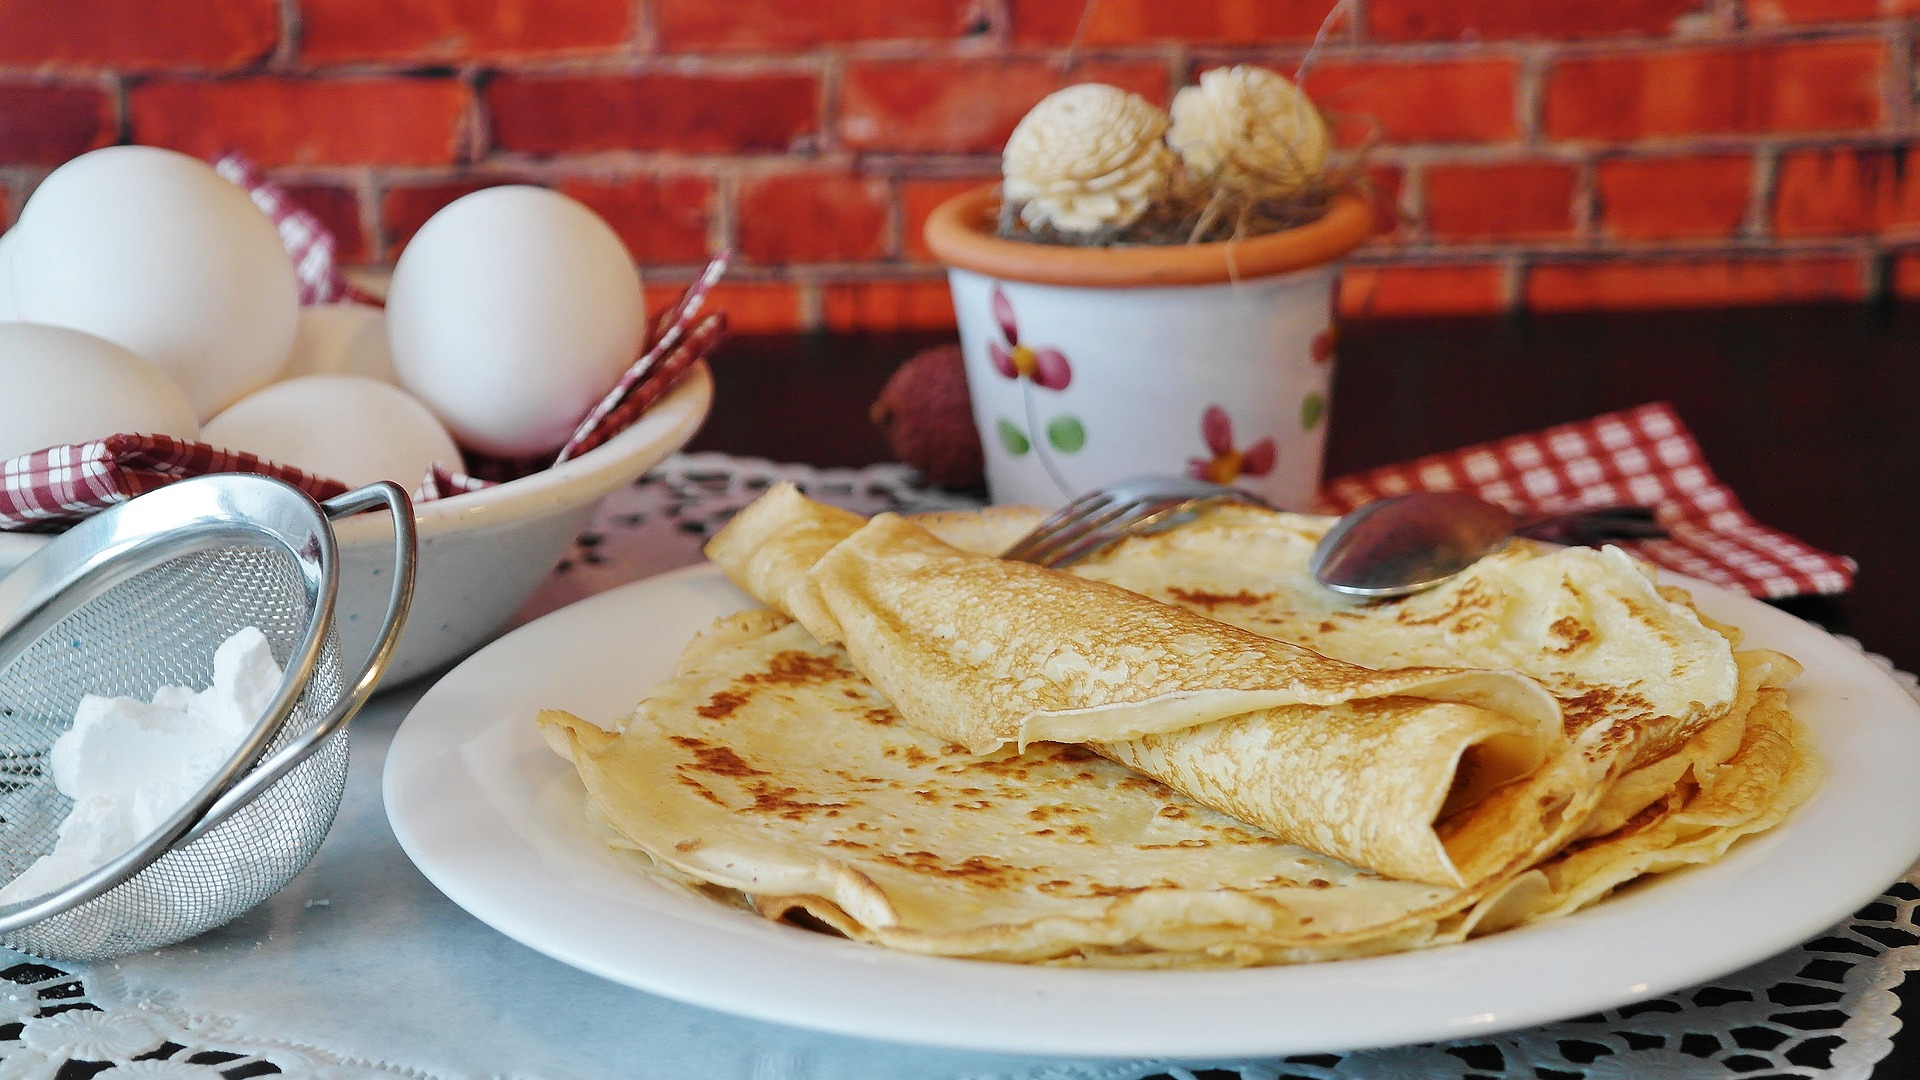 assortment of crepes folded on a plate